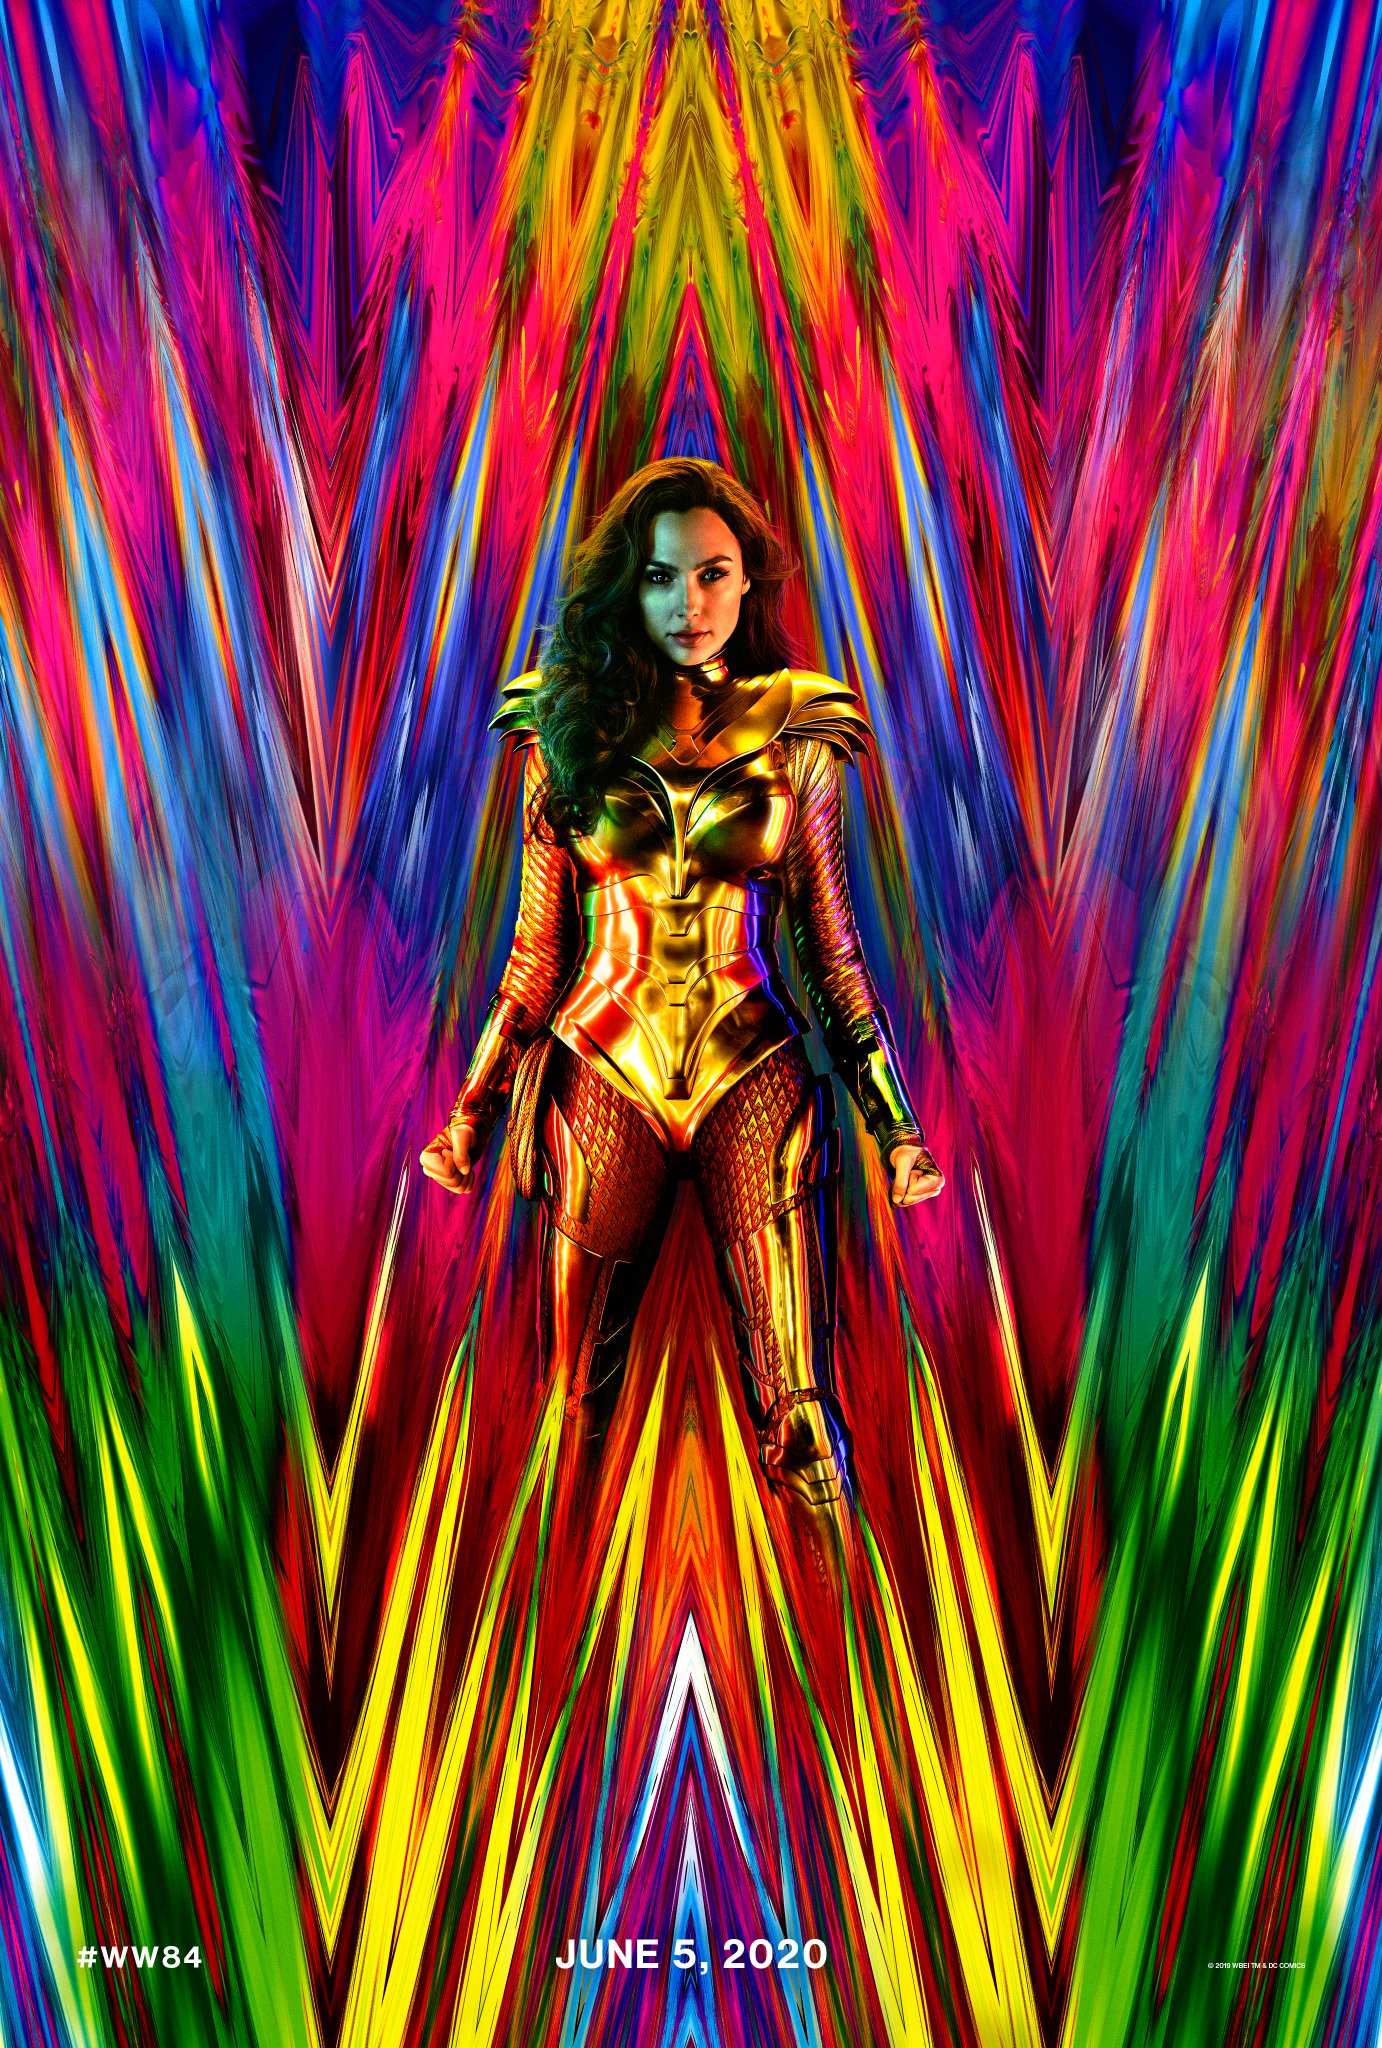 Wonder Woman 1984 poster Gal Gadot